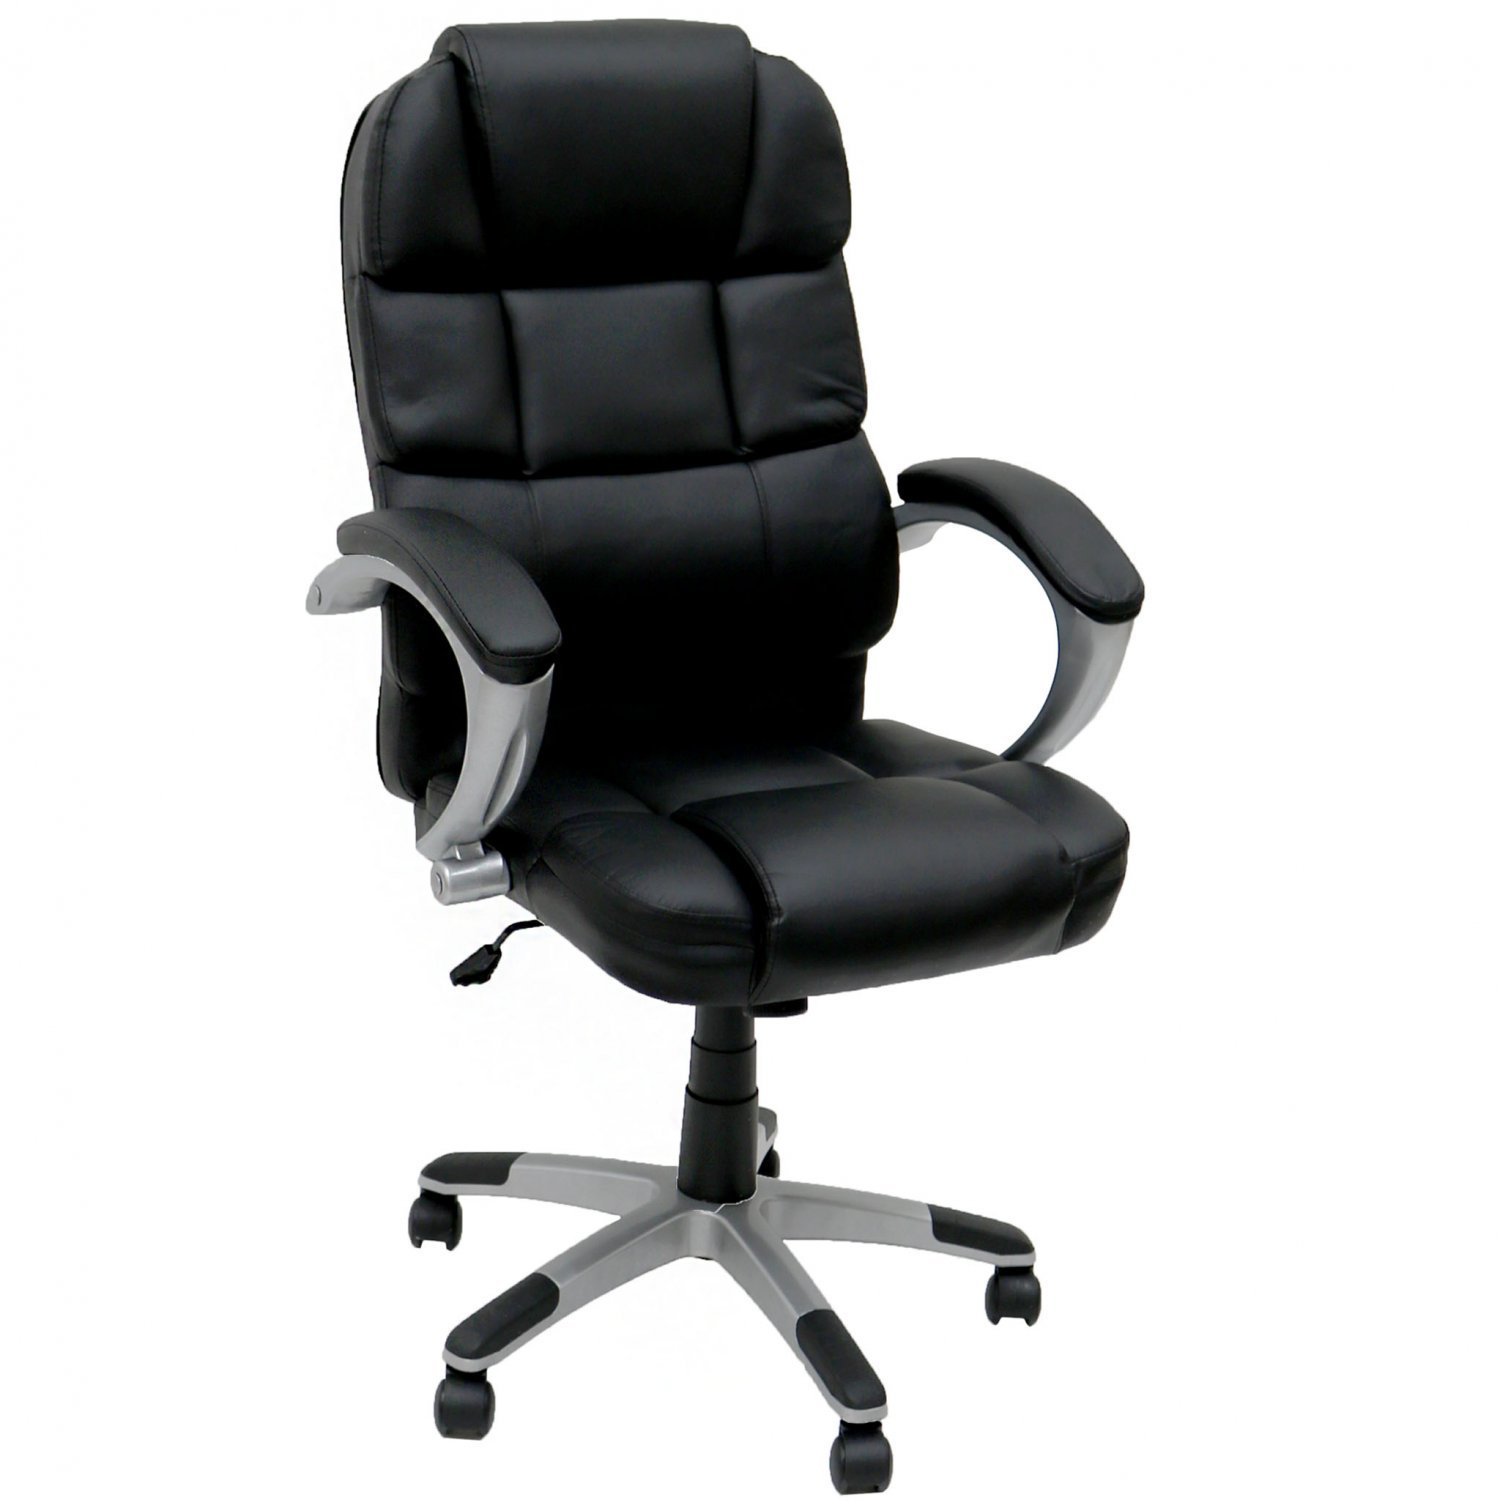 Luxury Office Chair Luxury Designer Computer Office Chair Black 69 99